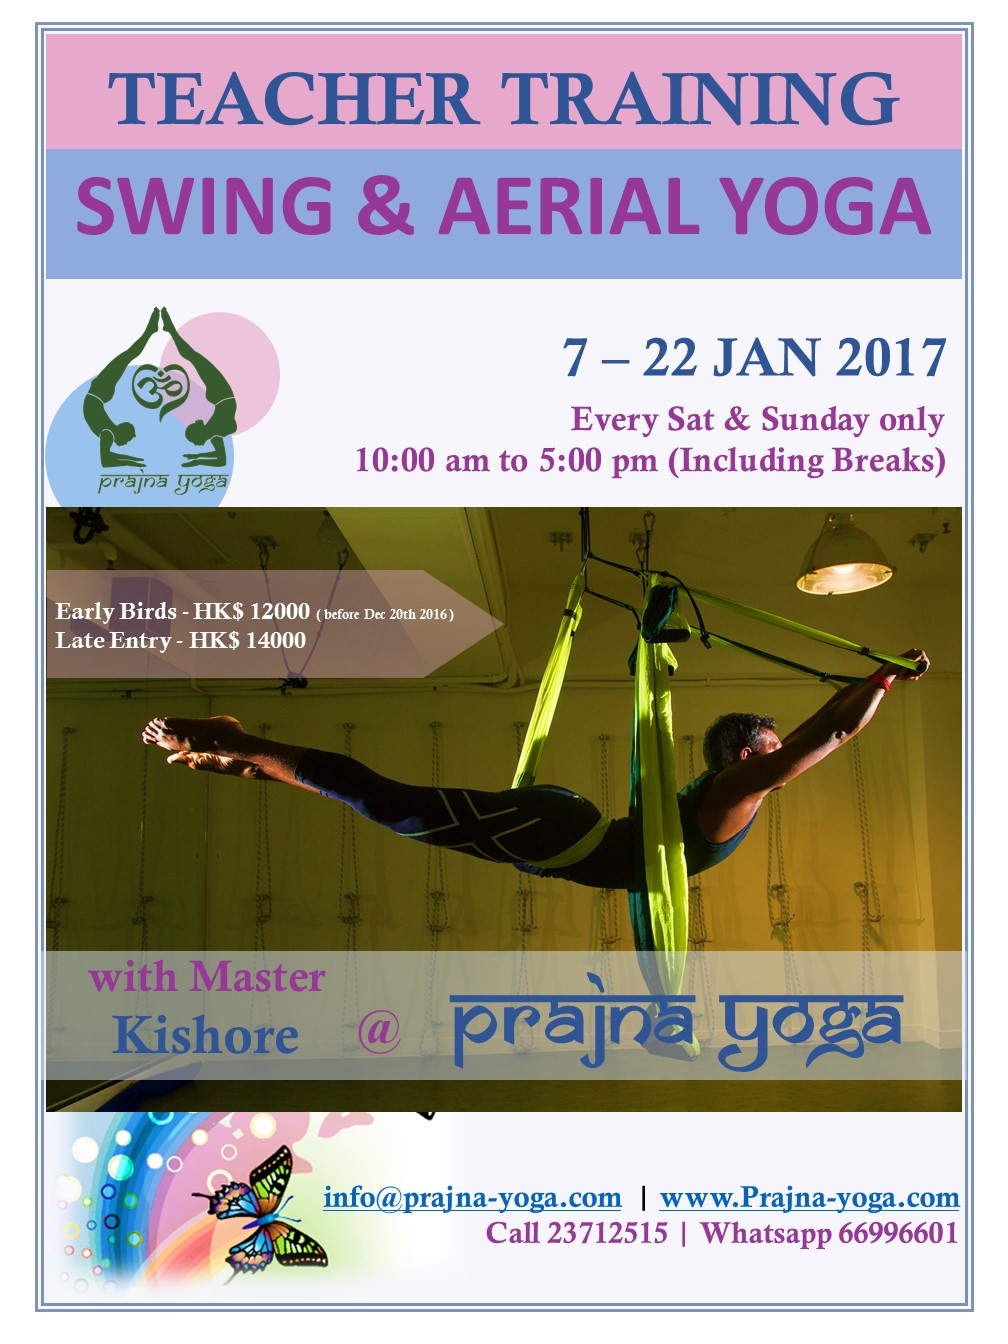 Swing & Aerial Yoga Teacher Training